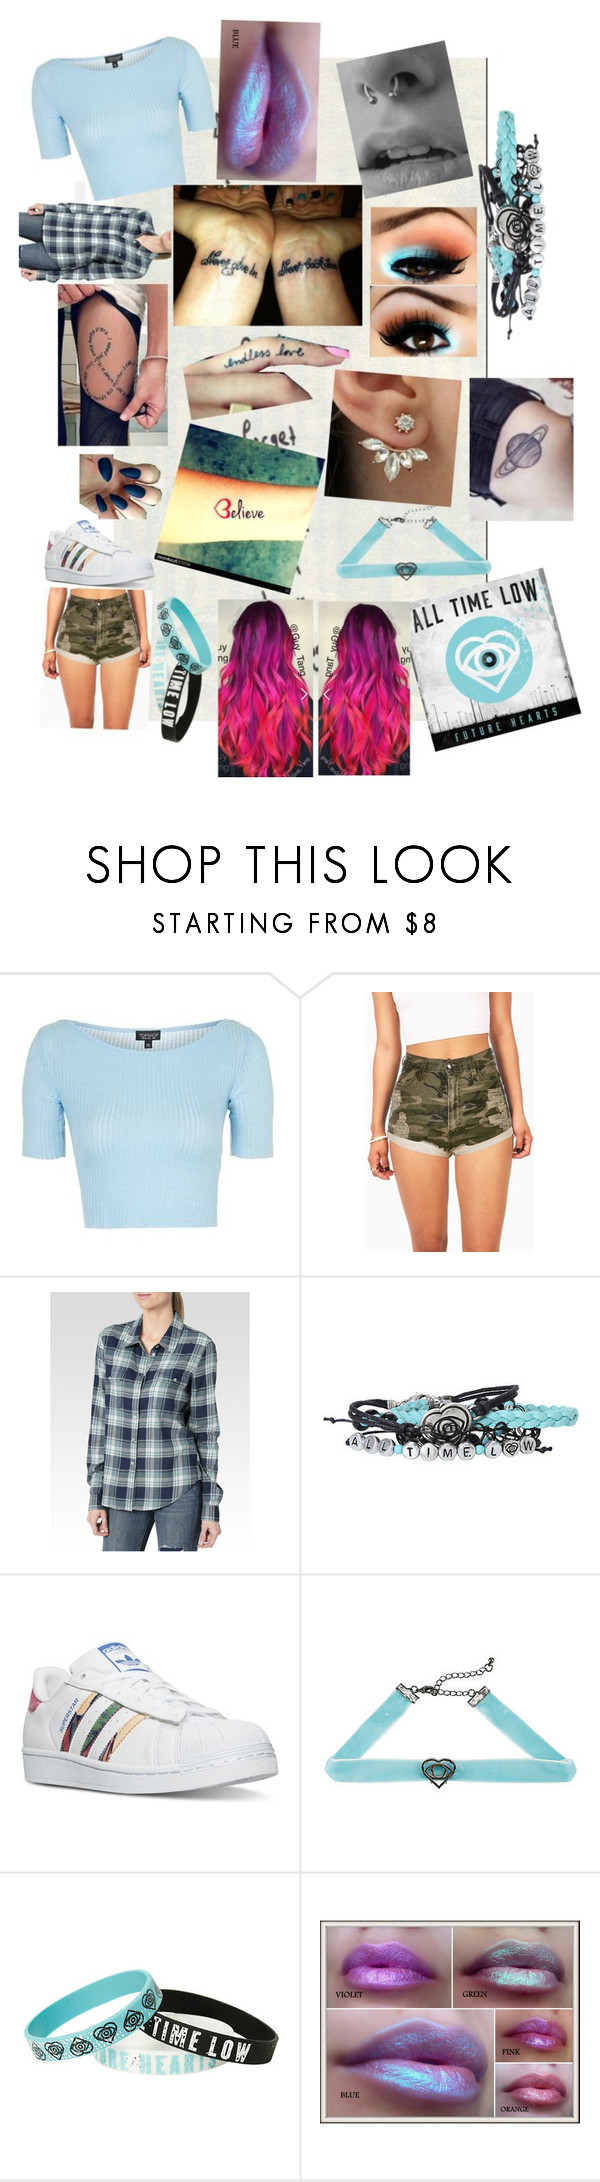 """""""Missing You(All Time Low)"""" by only-selflove ❤ liked on Polyvore featuring Topshop, Paige Denim and adidas"""